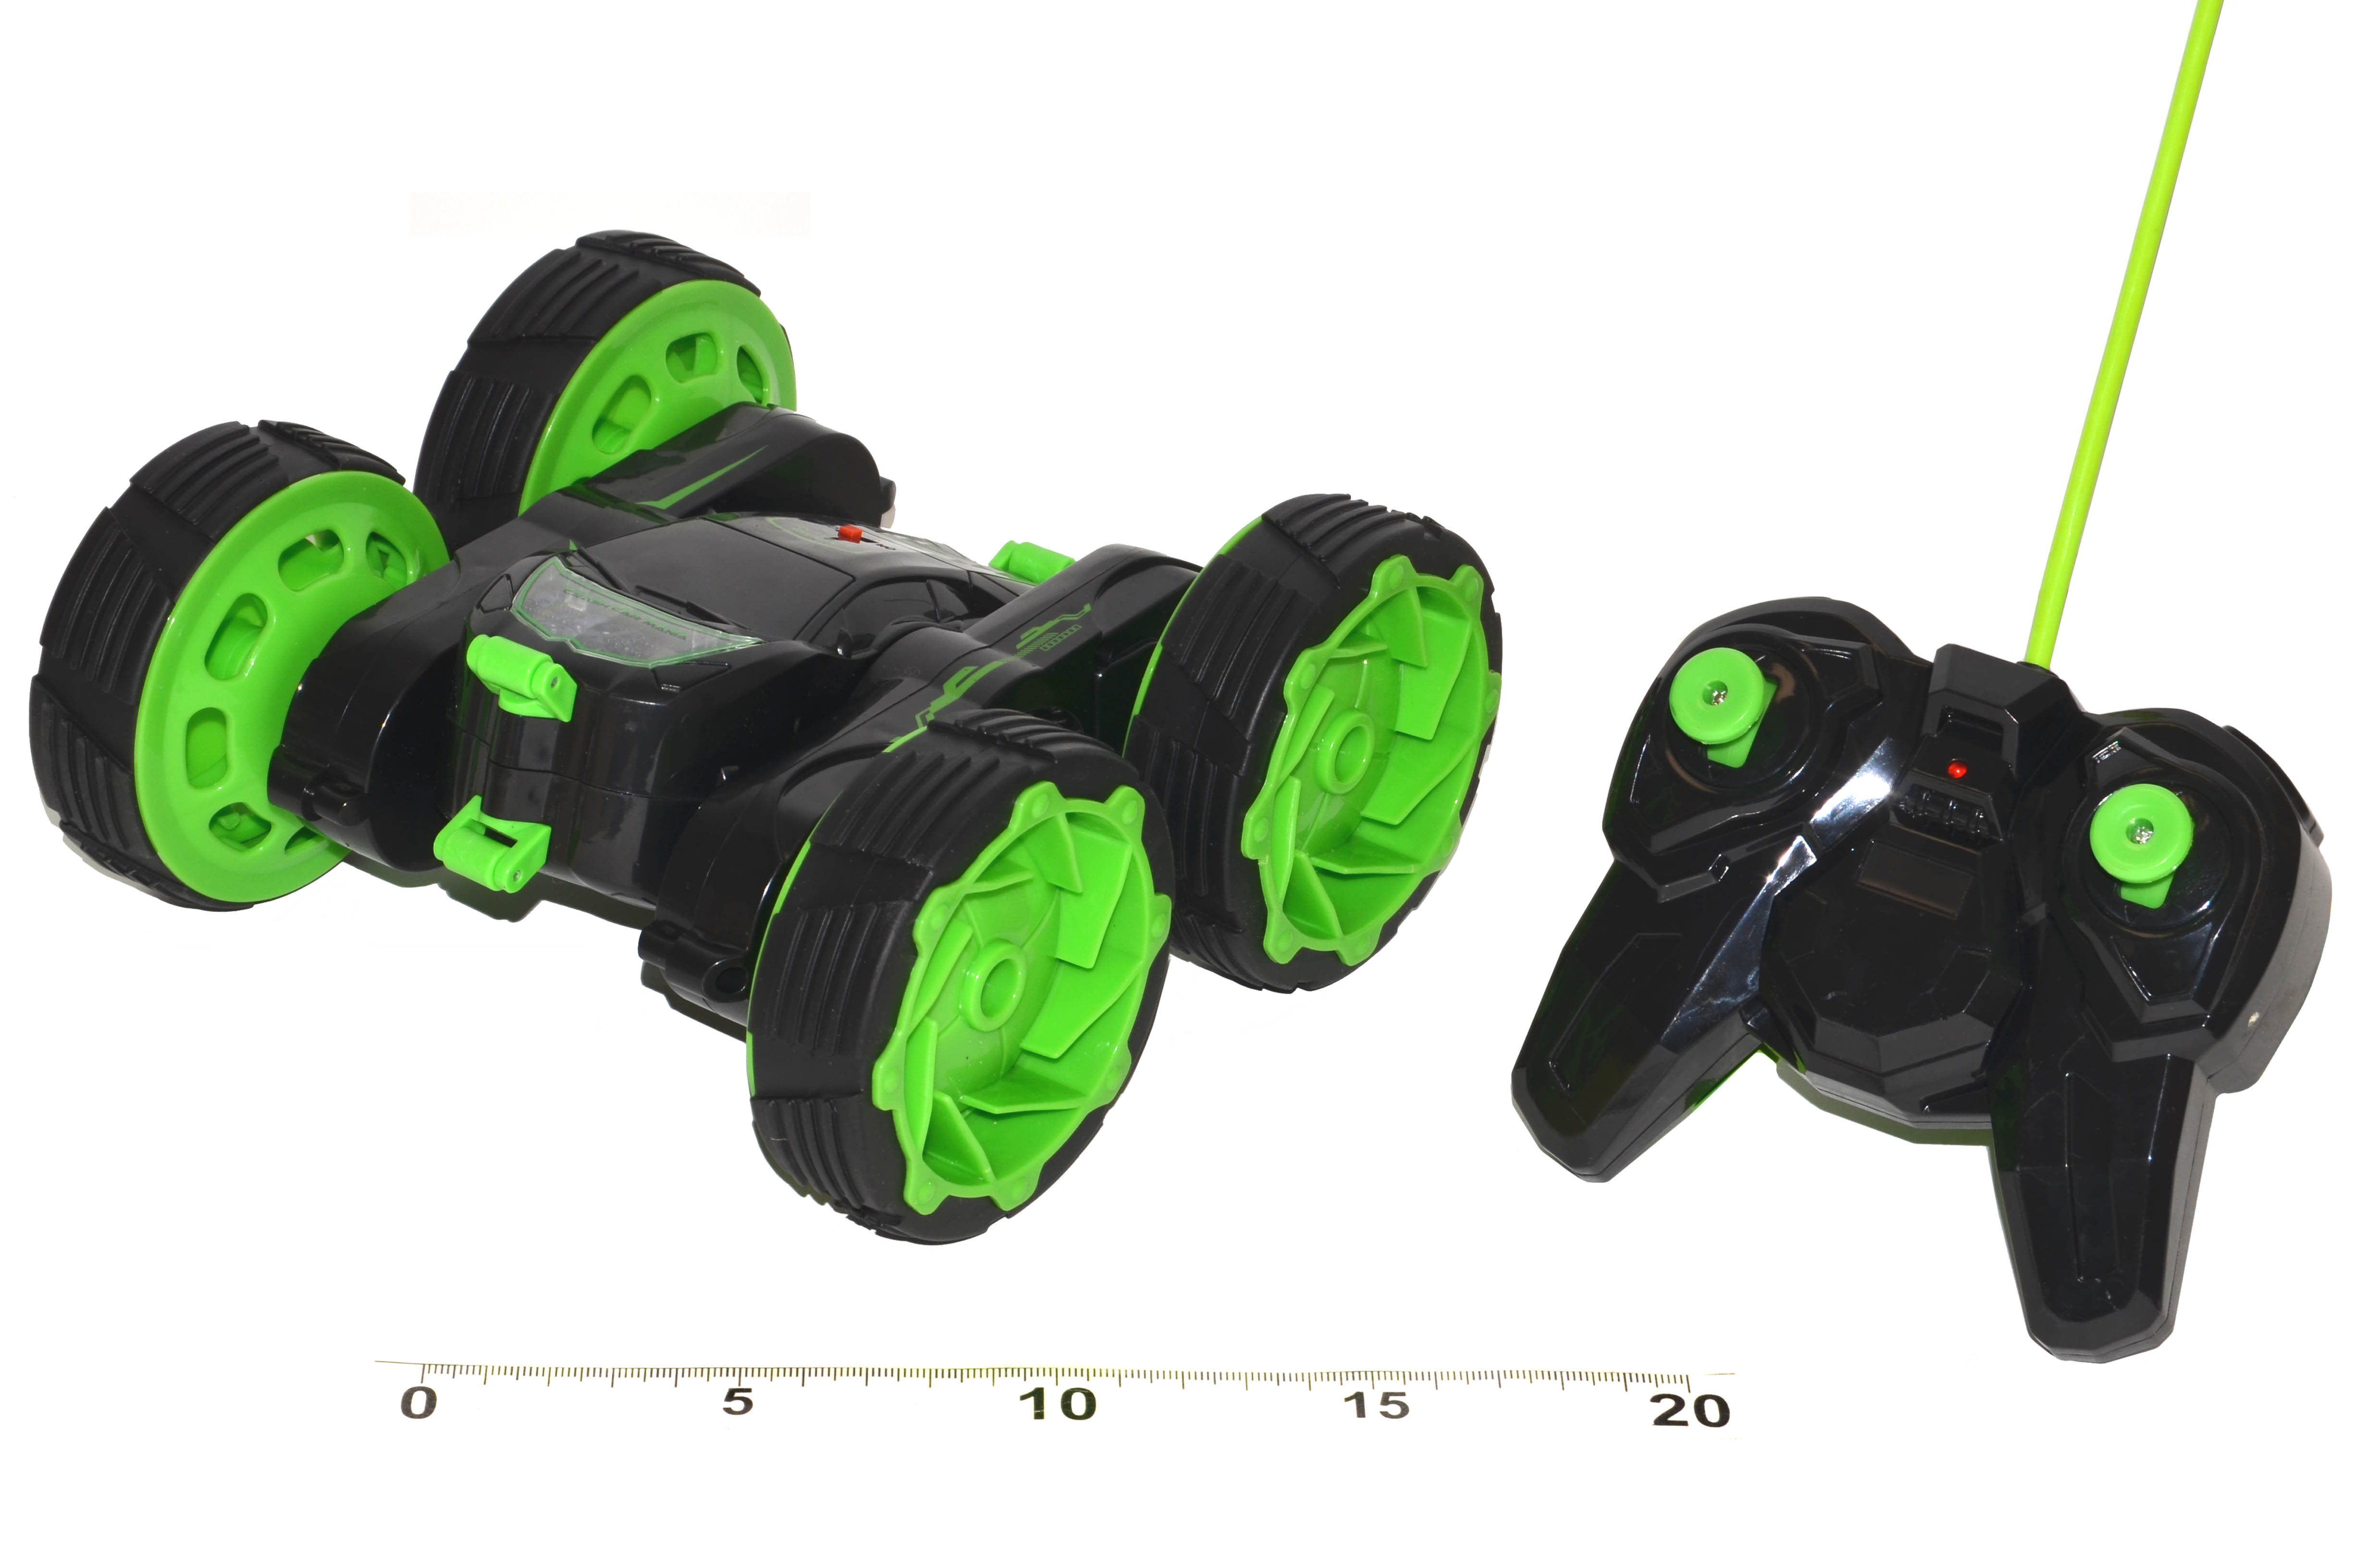 WIKY Auto Roll Stunt RC 18 cm